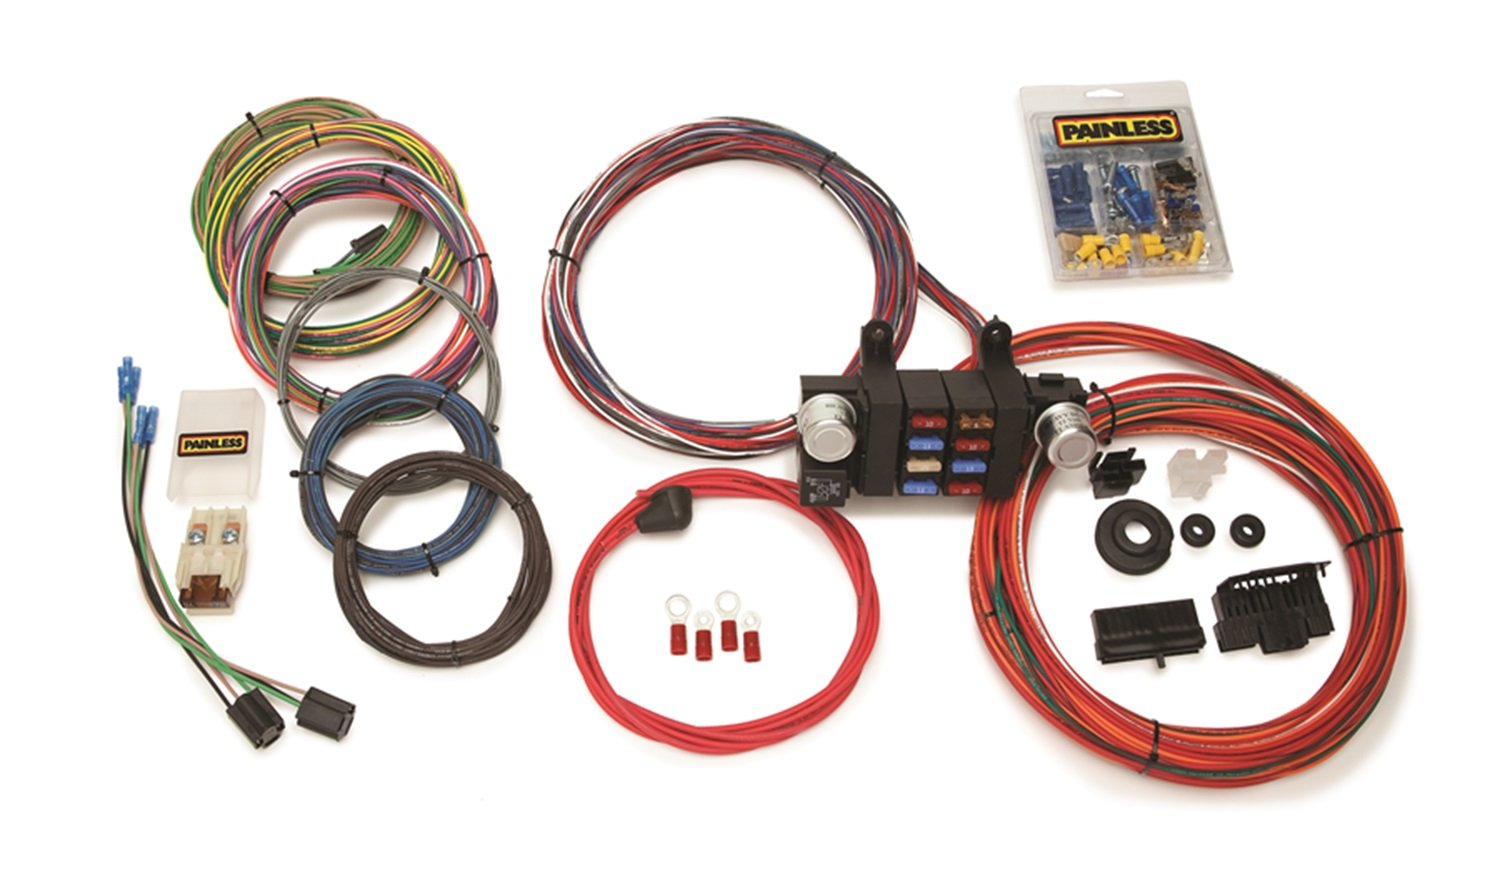 714FypRjpJL._SL1500_ amazon com painless wiring 10308 8 circuit mod t bucket h automotive wiring harness at mifinder.co